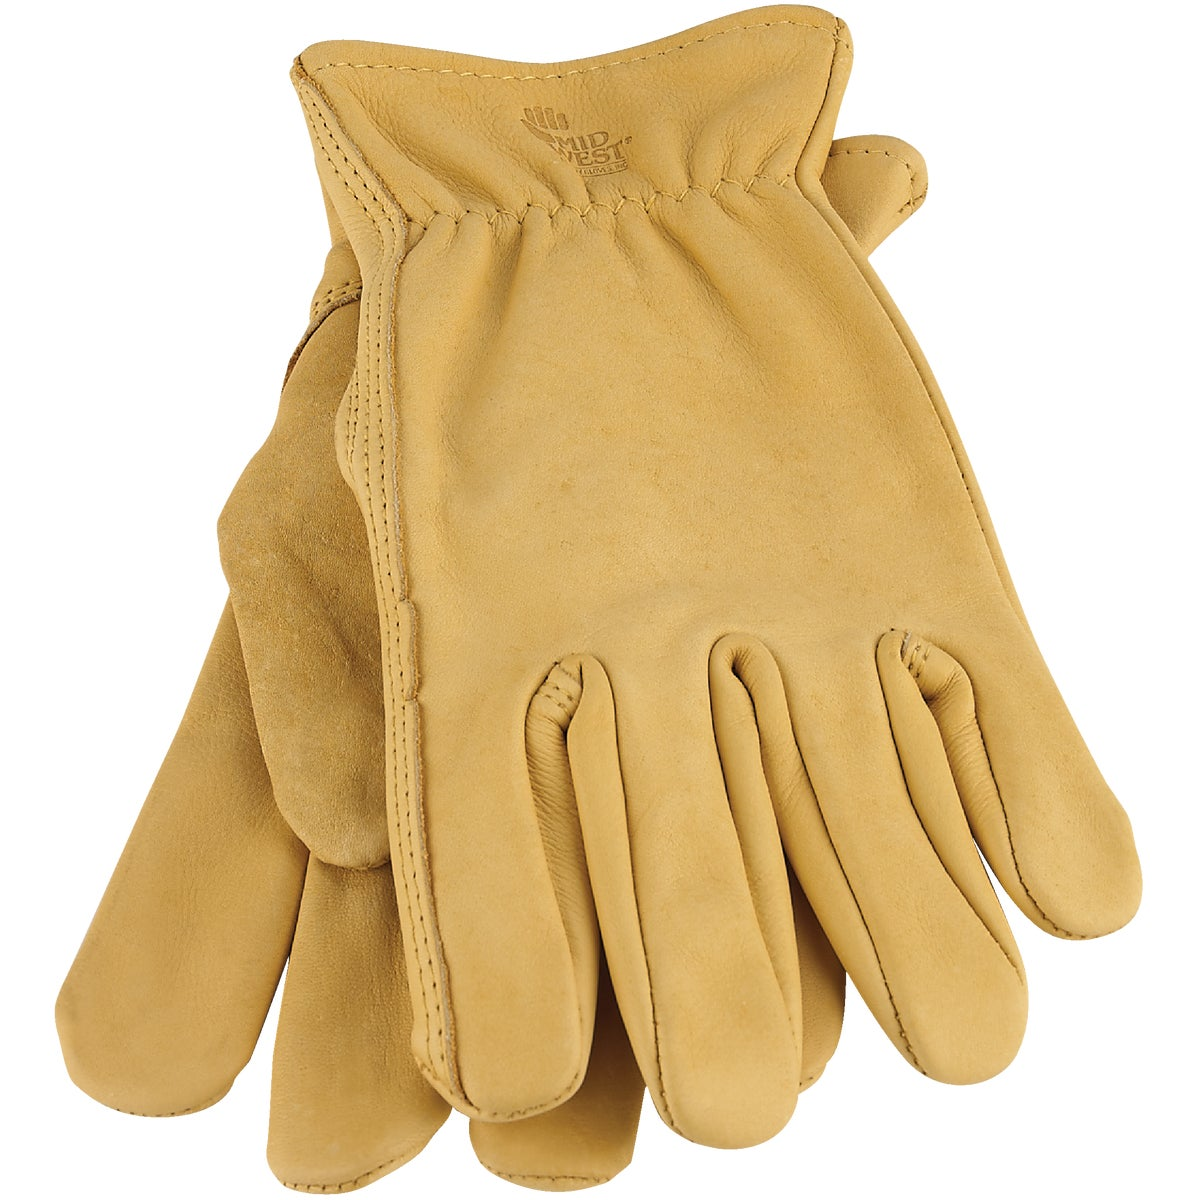 LRG LEATHER GLOVE - 688L by Midwest Quality Glov